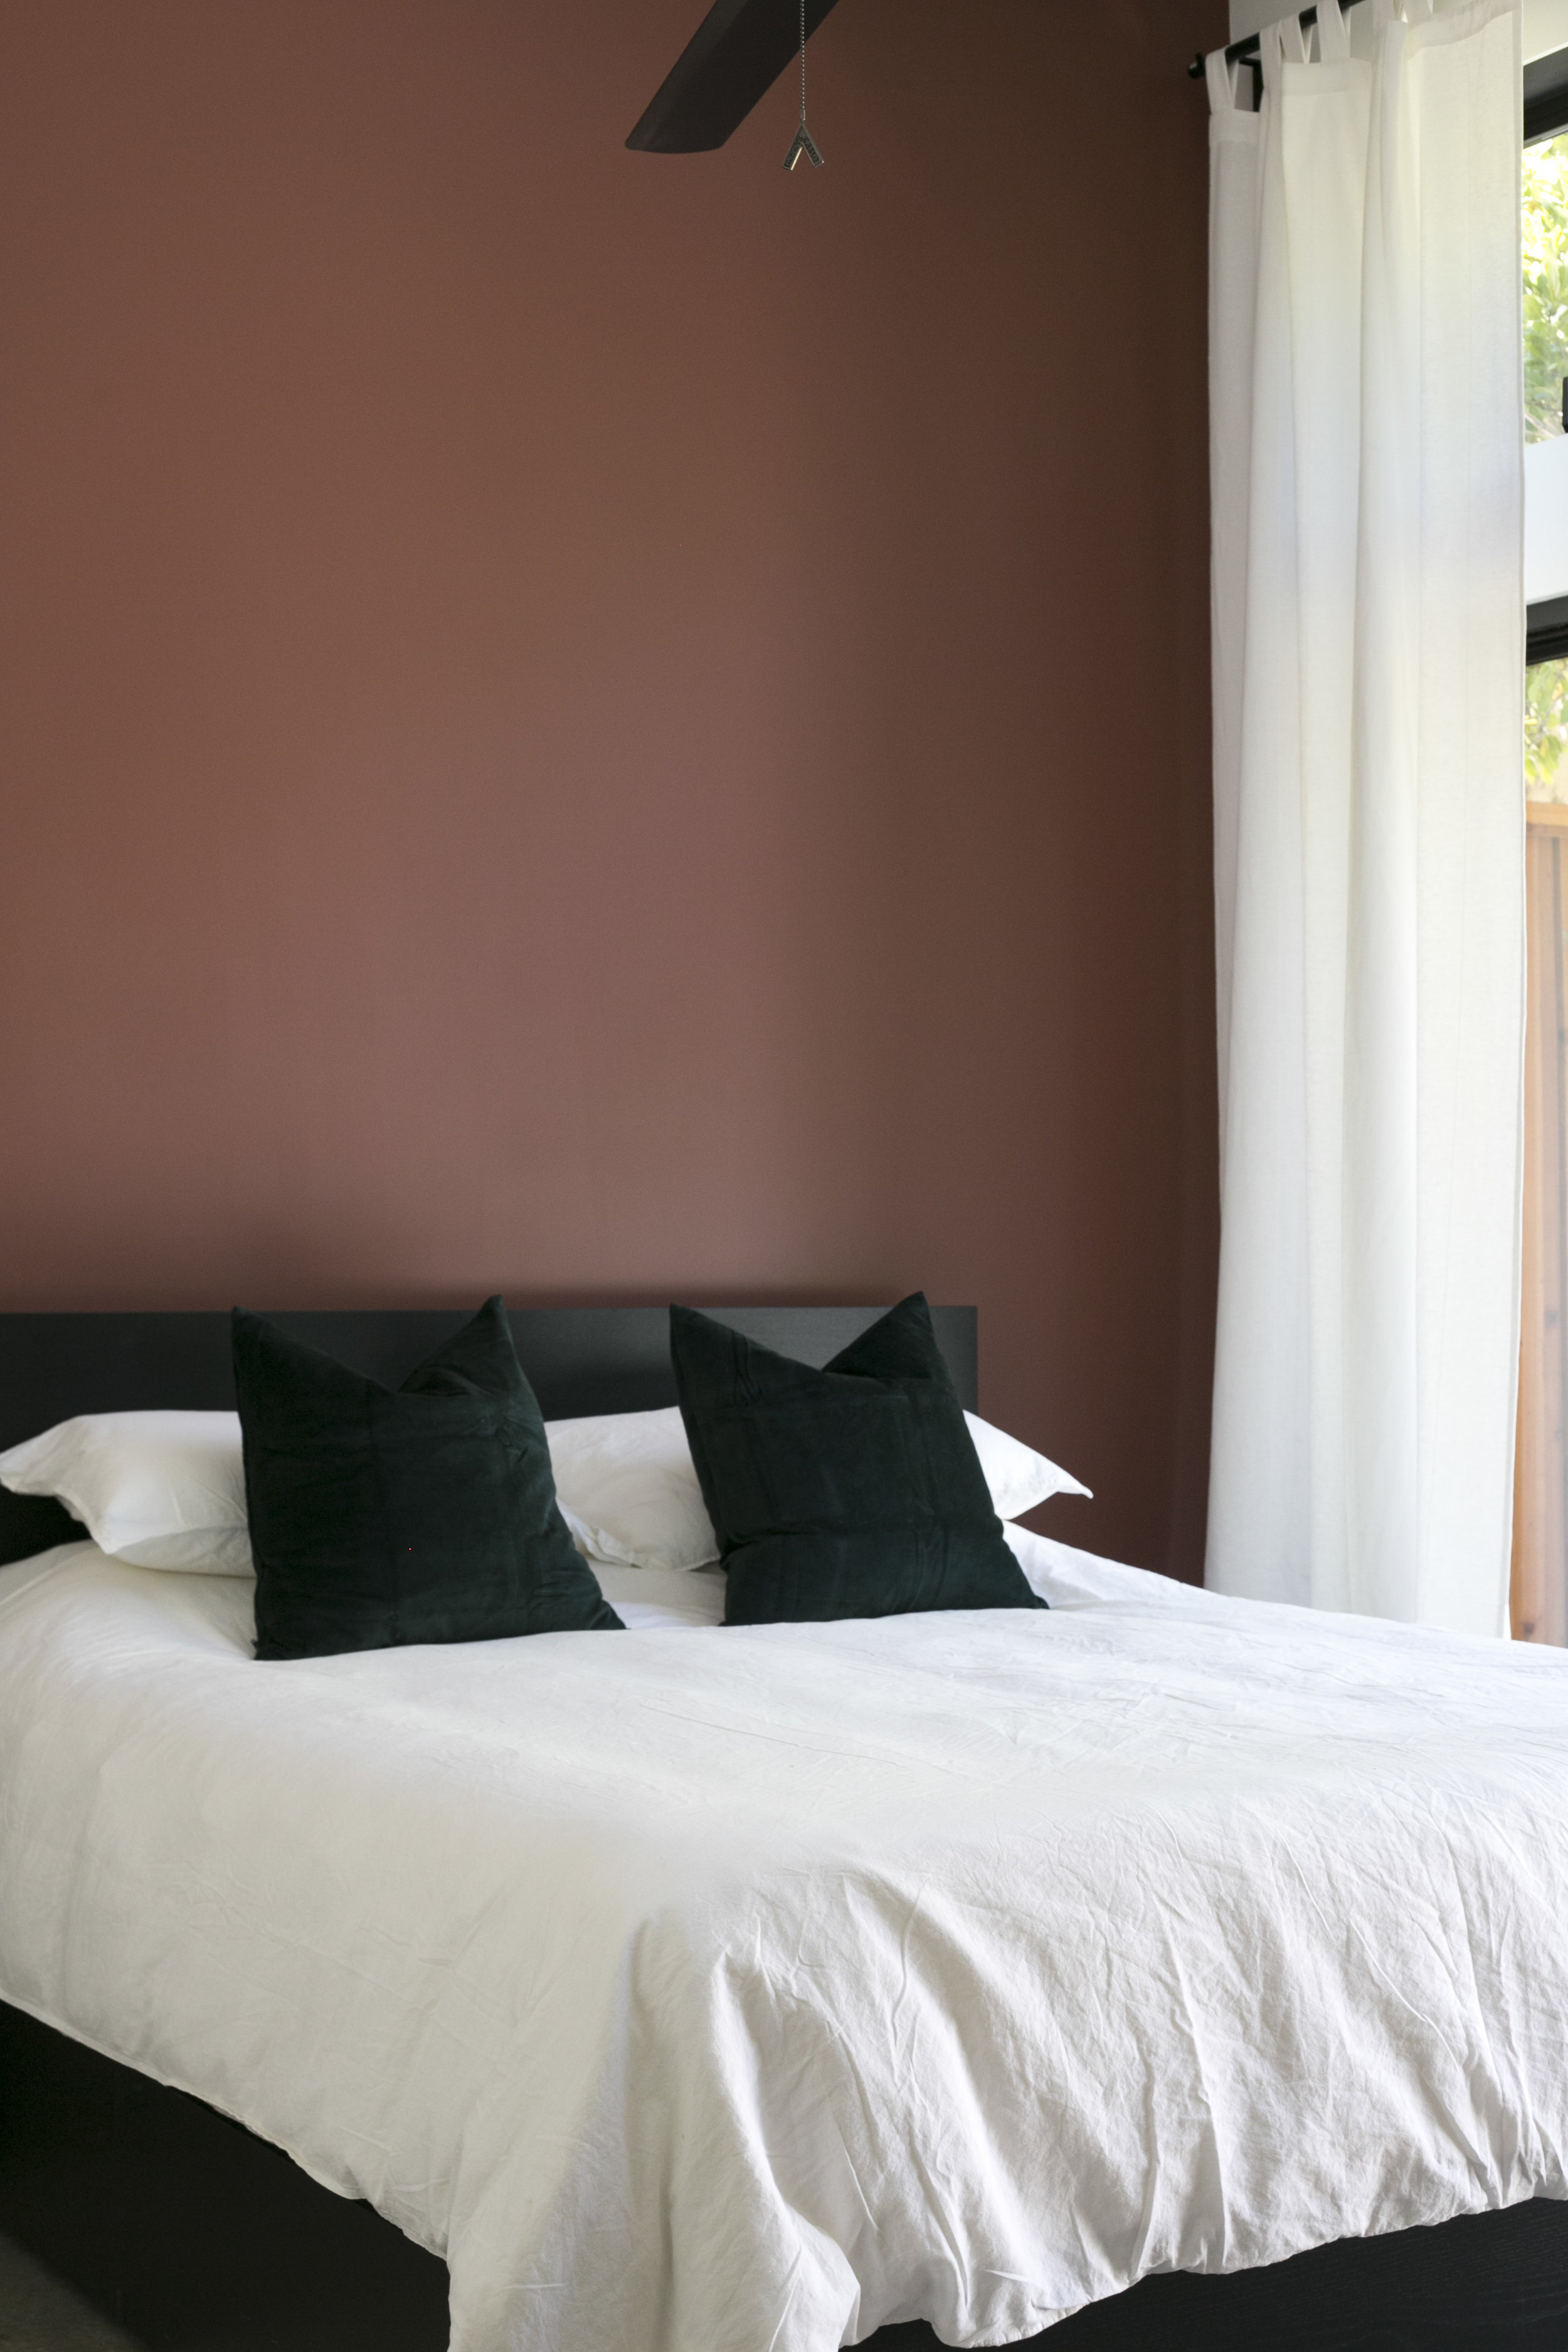 switch-house-bedroom-accent-wall-white-curtains.jpg